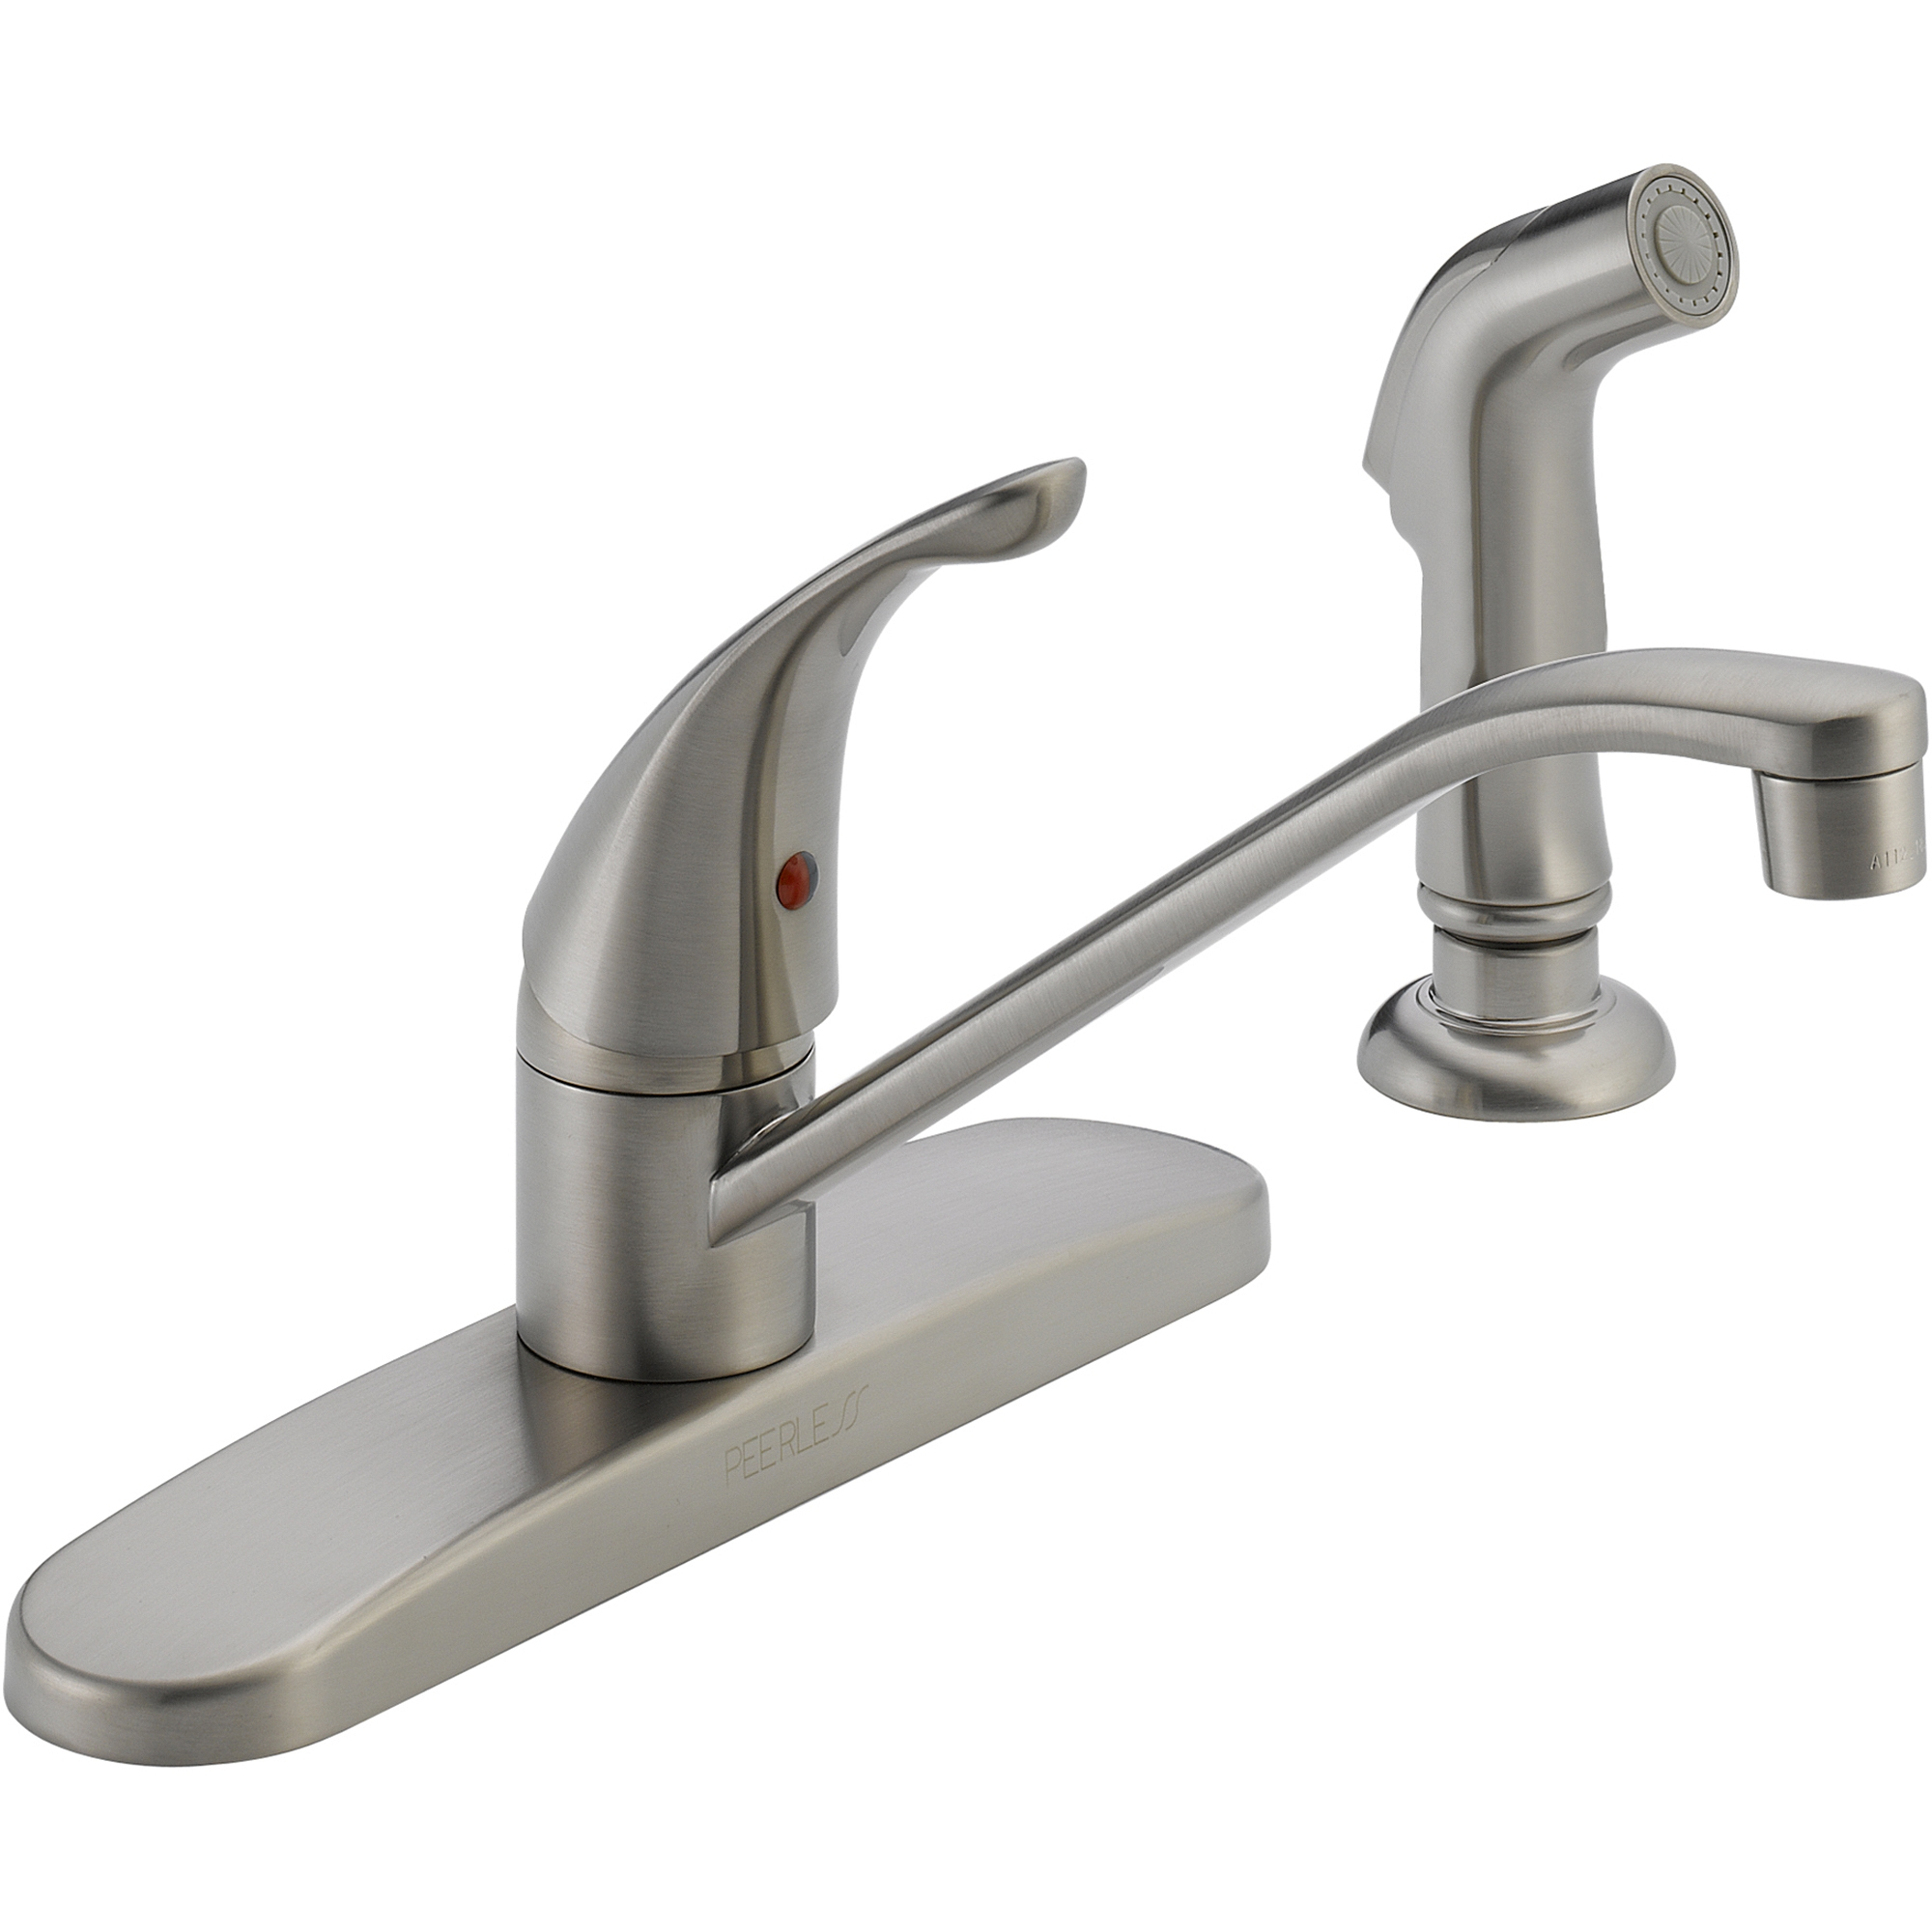 Ideas, types of aerators for faucets types of aerators for faucets kitchen faucets walmart walmart 2000 x 2000 jpeg.